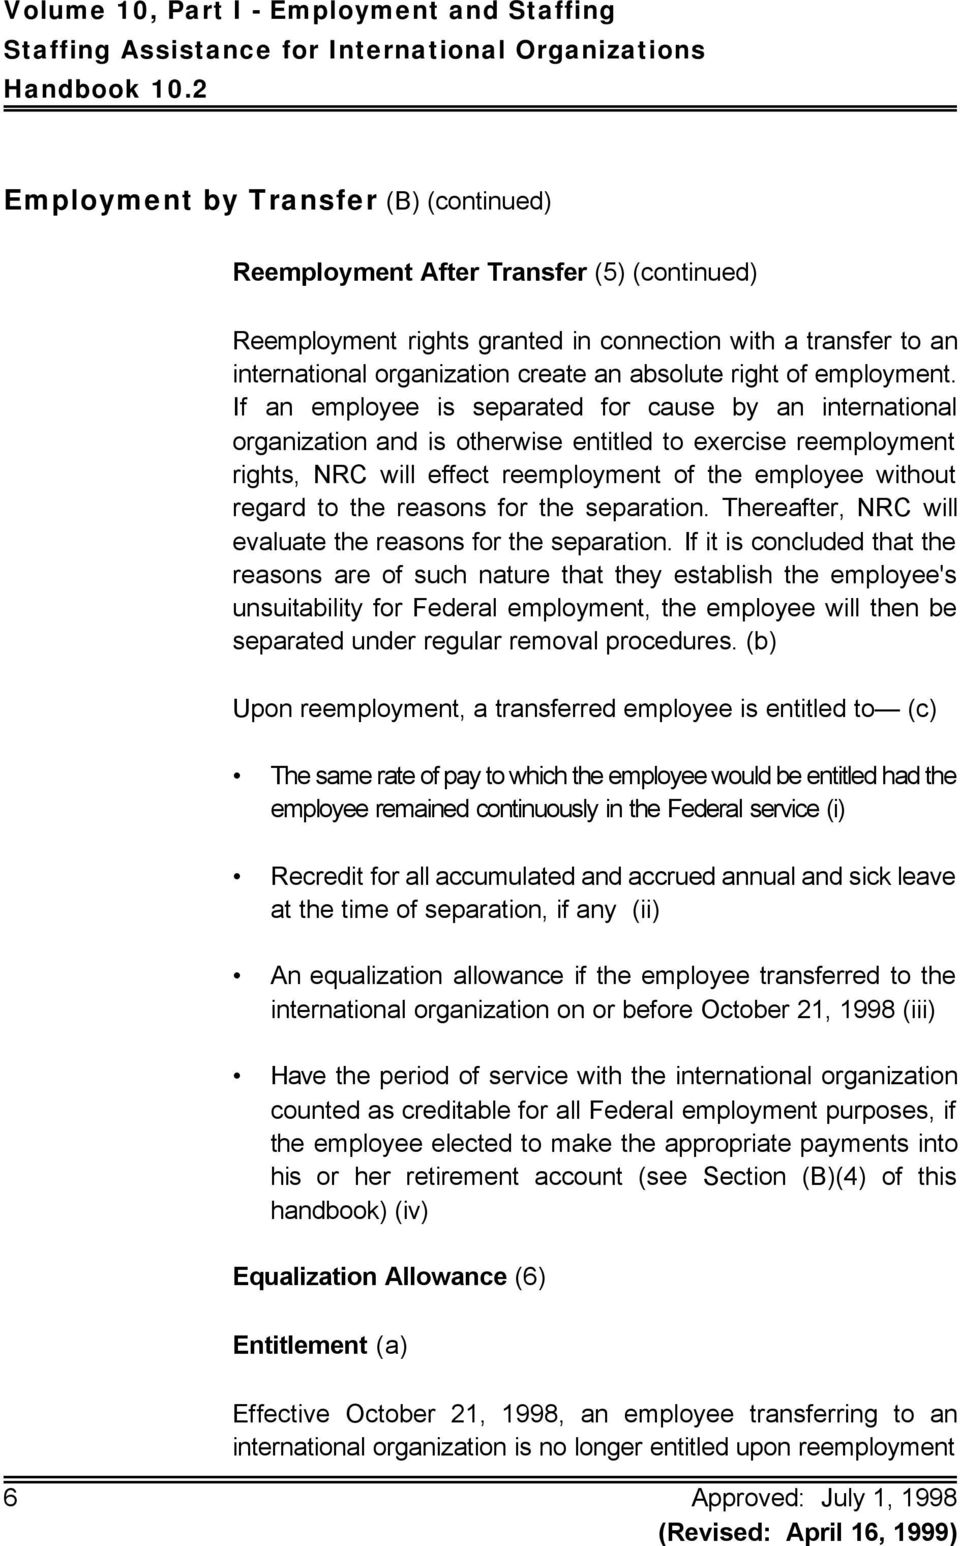 If an employee is separated for cause by an international organization and is otherwise entitled to exercise reemployment rights, NRC will effect reemployment of the employee without regard to the